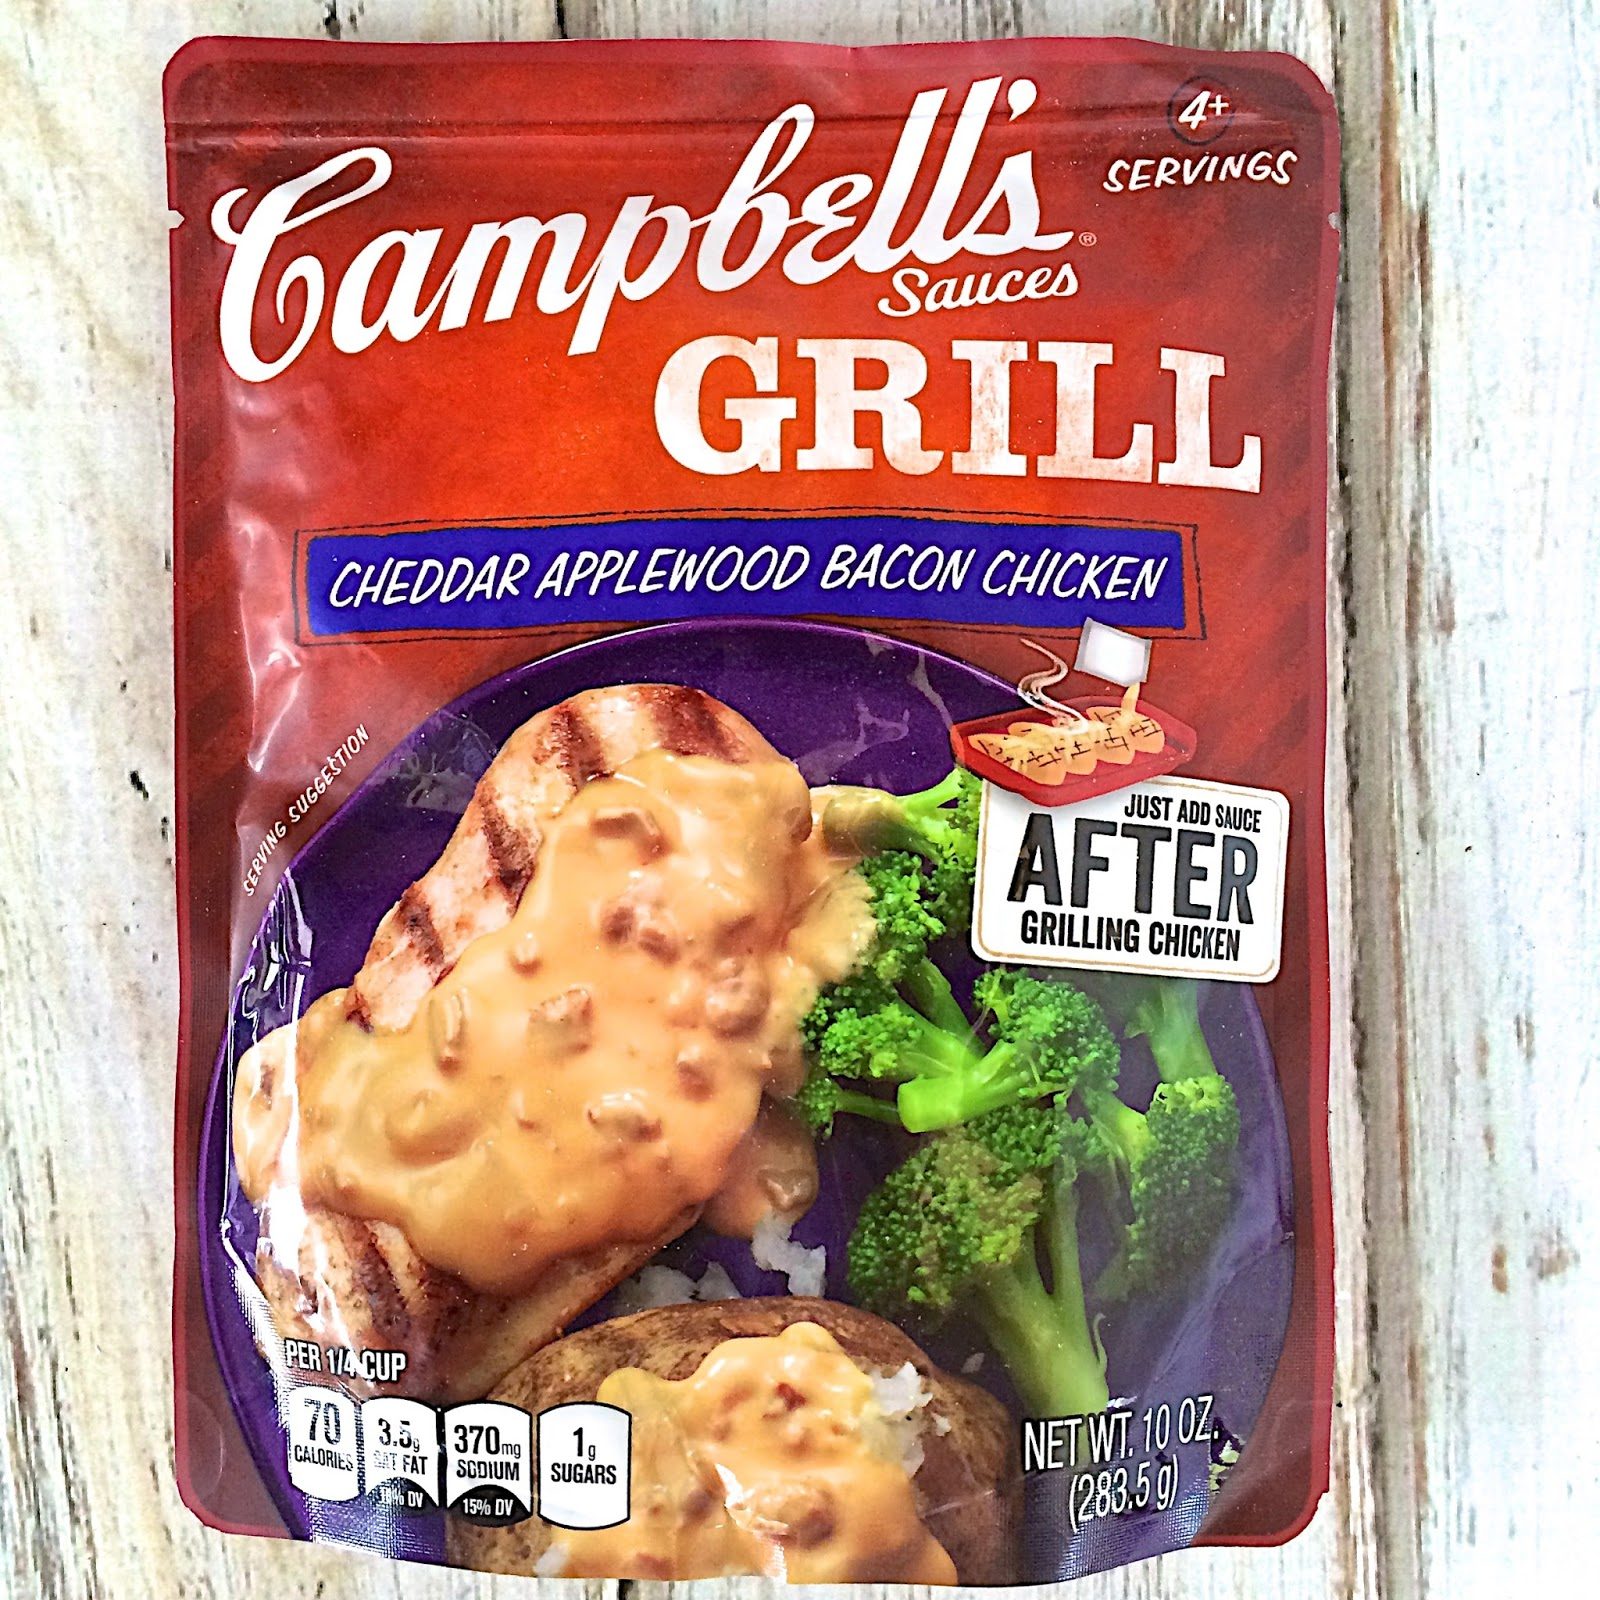 Campbell's Grill Sauces - Just 3 simple steps - season, grill and pour the sauce over the chicken. I don't know about you, but this is definitely my kind of easy weeknight meal! Start to finish in about 15 minutes with no prep-work.